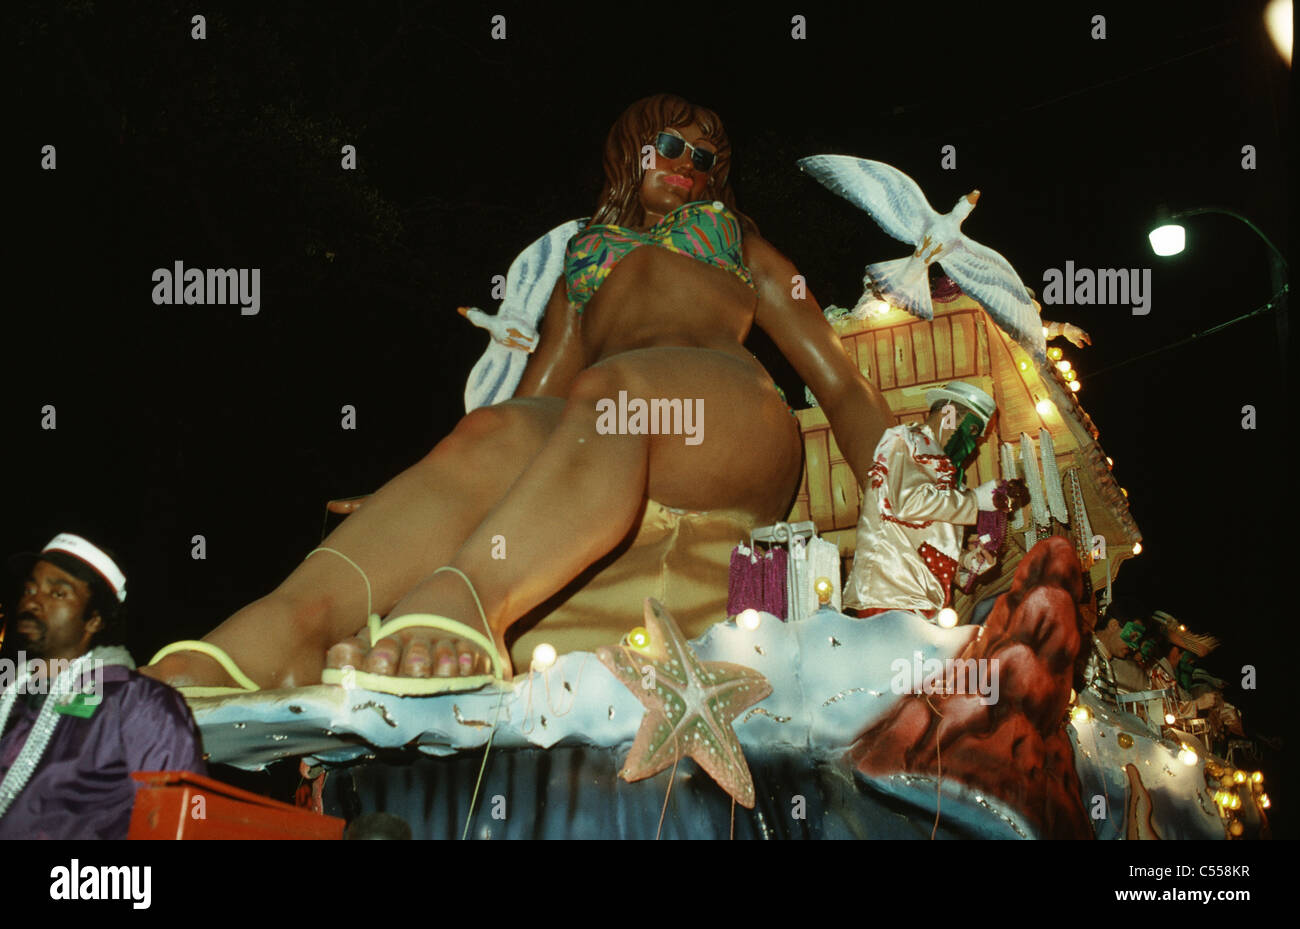 USA, Louisiana, New Orleans, Mardi Gras carnival celebration - Stock Image